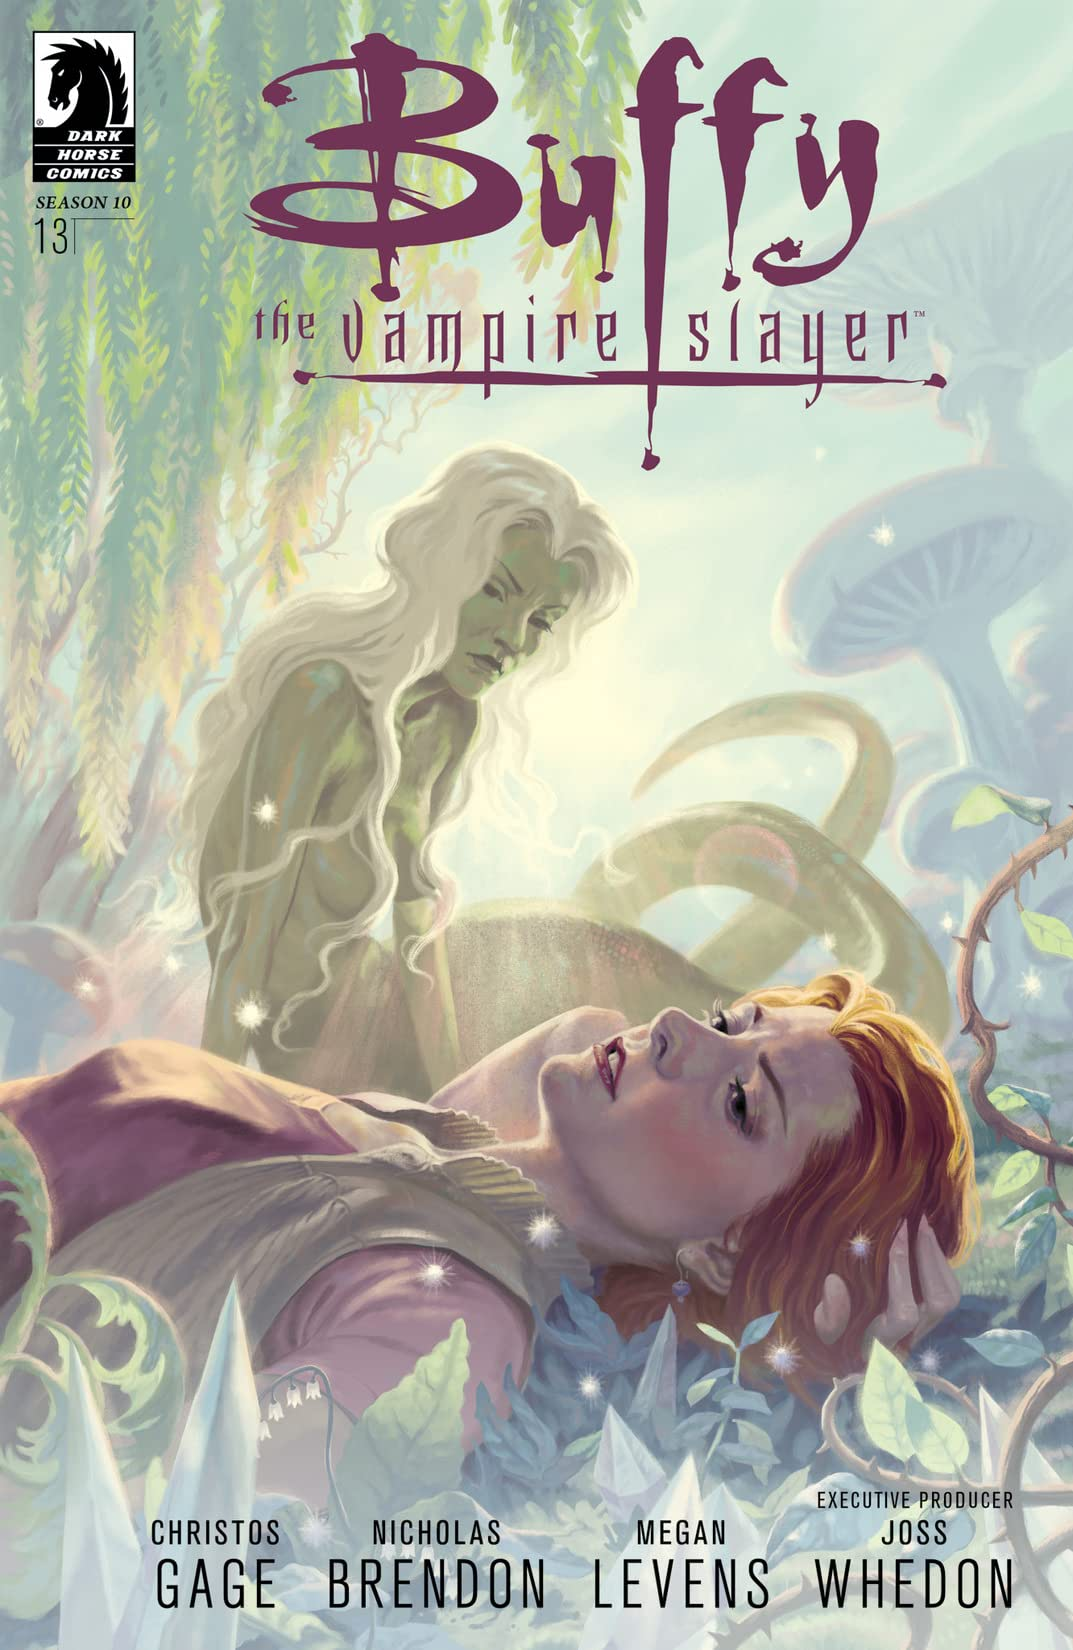 Buffy the Vampire Slayer: Season 10 #13